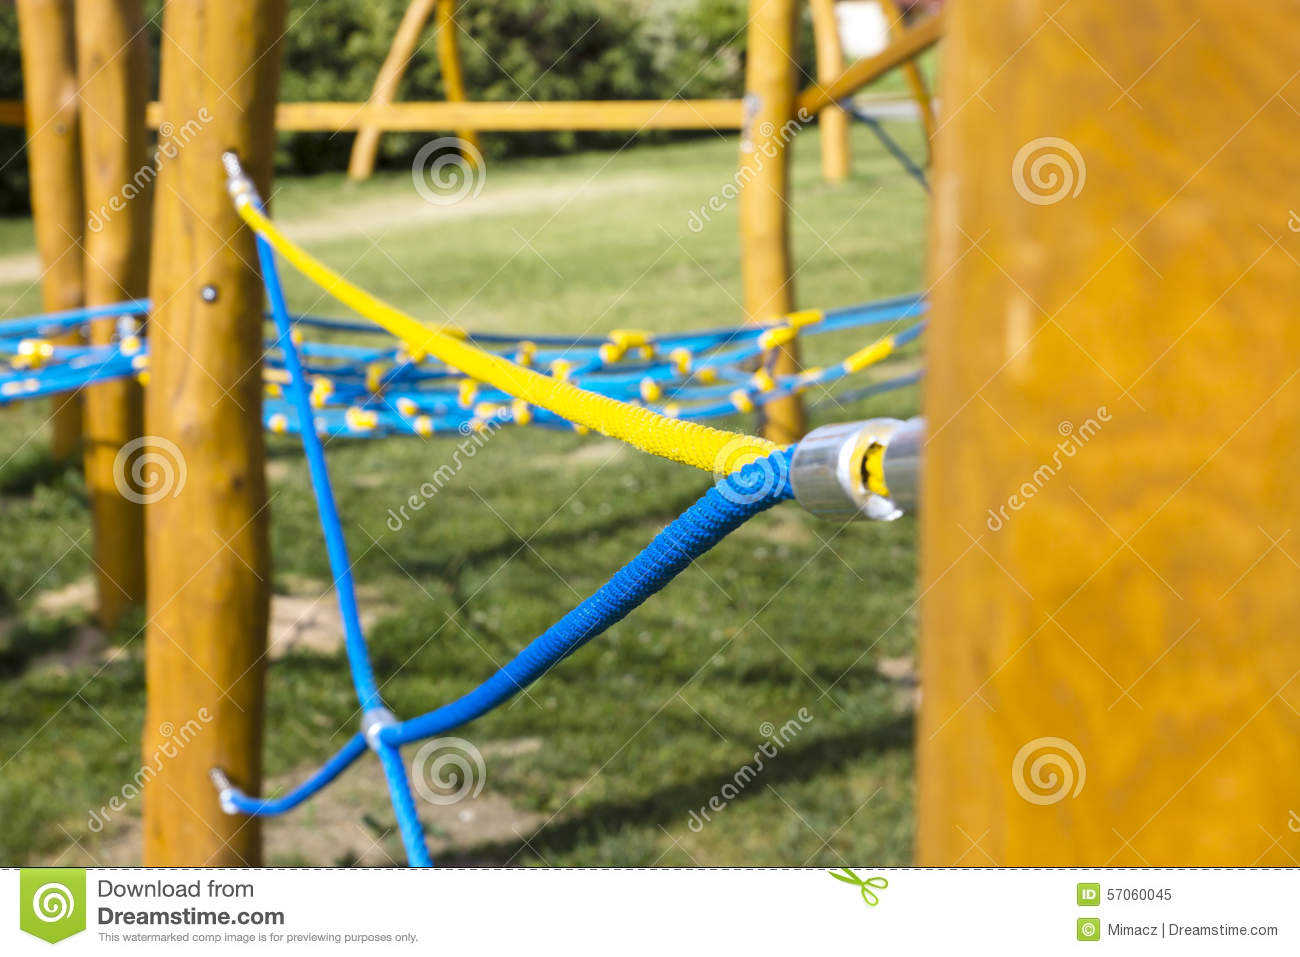 New Rope climbing frame stock image. Image of blue, playground ...